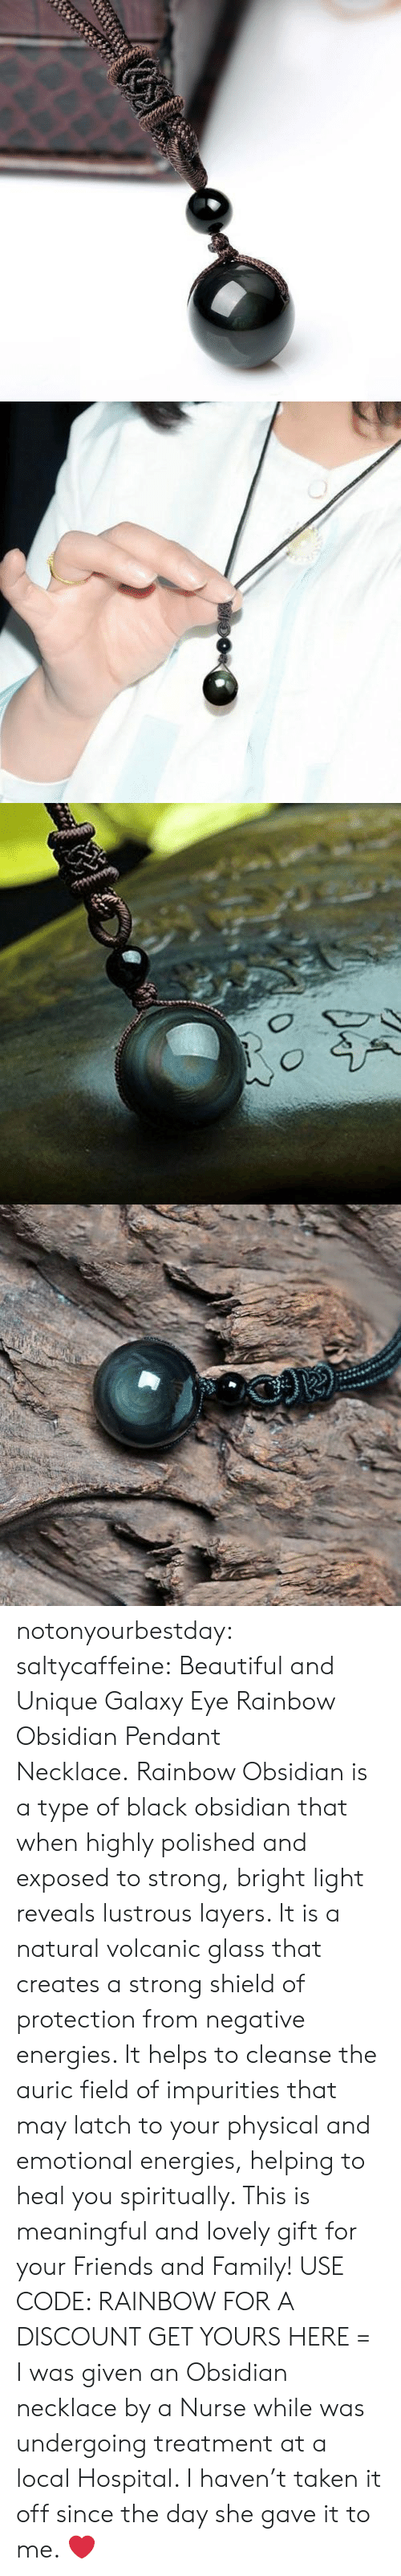 Beautiful, Family, and Friends: notonyourbestday: saltycaffeine:  Beautiful and Unique Galaxy Eye Rainbow Obsidian Pendant Necklace. Rainbow Obsidian is a type of black obsidian that when highly polished and exposed to strong, bright light reveals lustrous layers. It is a natural volcanic glass that creates a strong shield of protection from negative energies. It helps to cleanse the auric field of impurities that may latch to your physical and emotional energies, helping to heal you spiritually. This is meaningful and lovely gift for your Friends and Family! USE CODE: RAINBOW FOR A DISCOUNT GET YOURS HERE =    I was given an Obsidian necklace by a Nurse while was undergoing treatment at a local Hospital.  I haven't taken it off since the day she gave it to me. ❤️